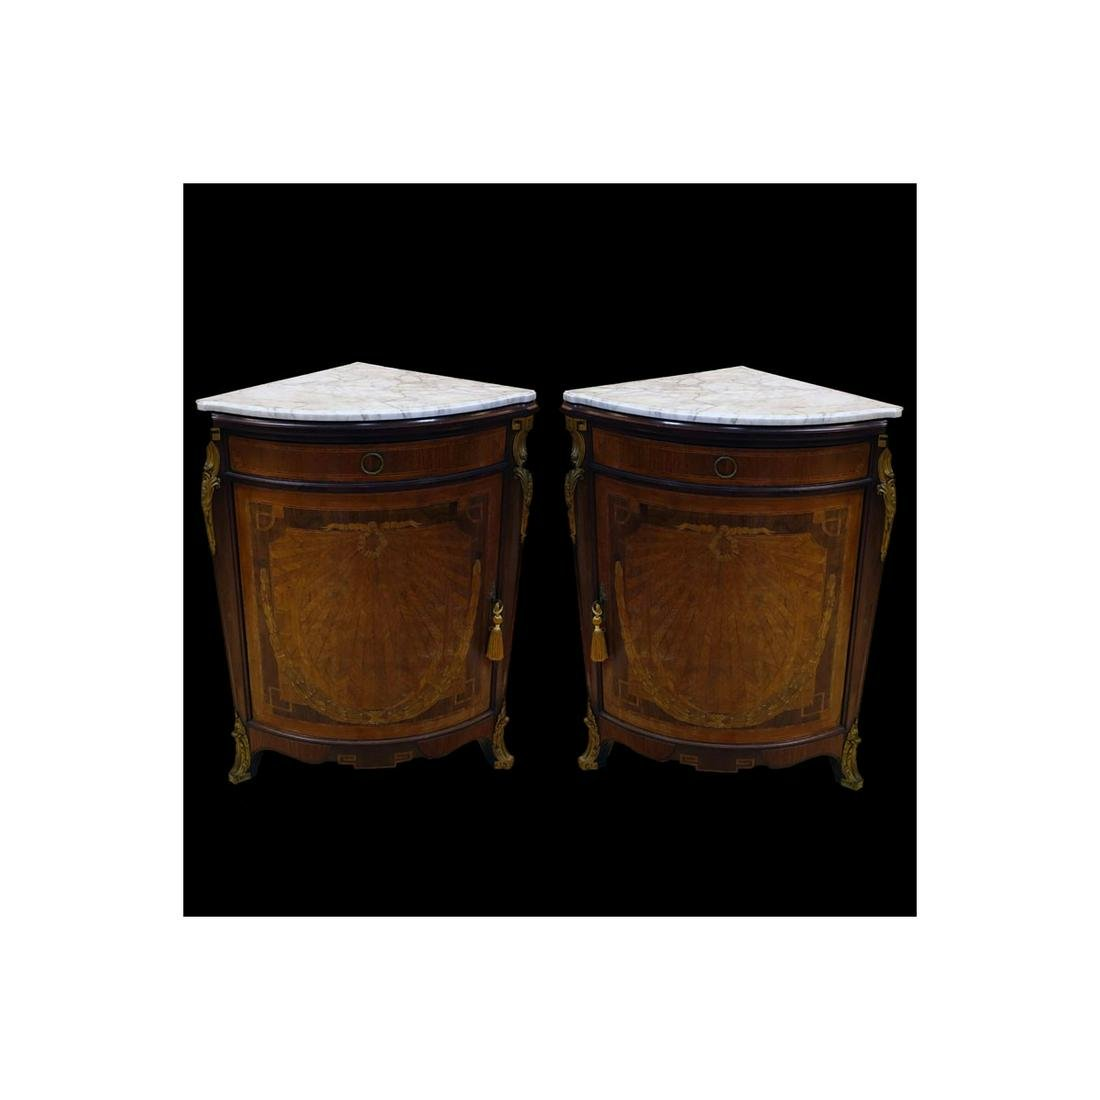 Pair of Antique French Corner Cabinets